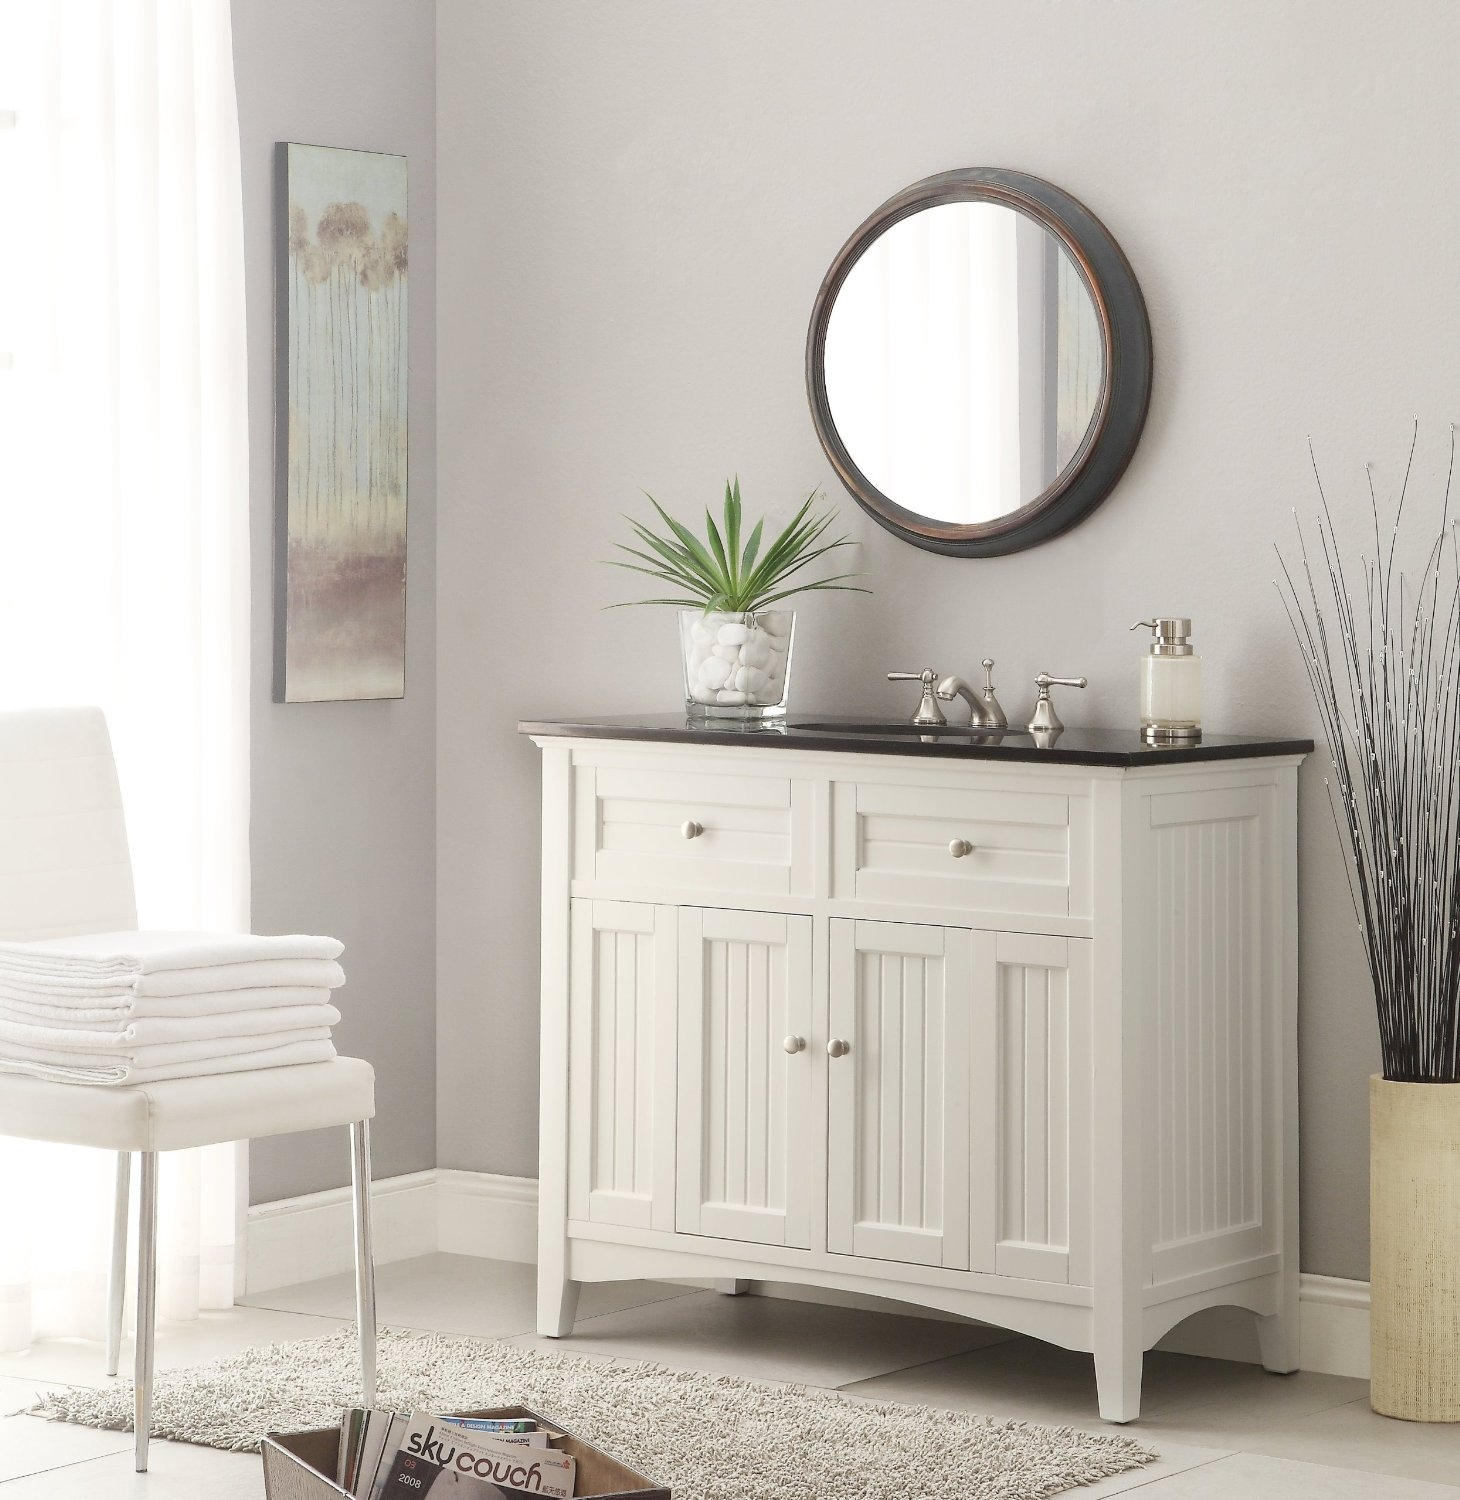 53 Inch Double Sink Bathroom Vanity